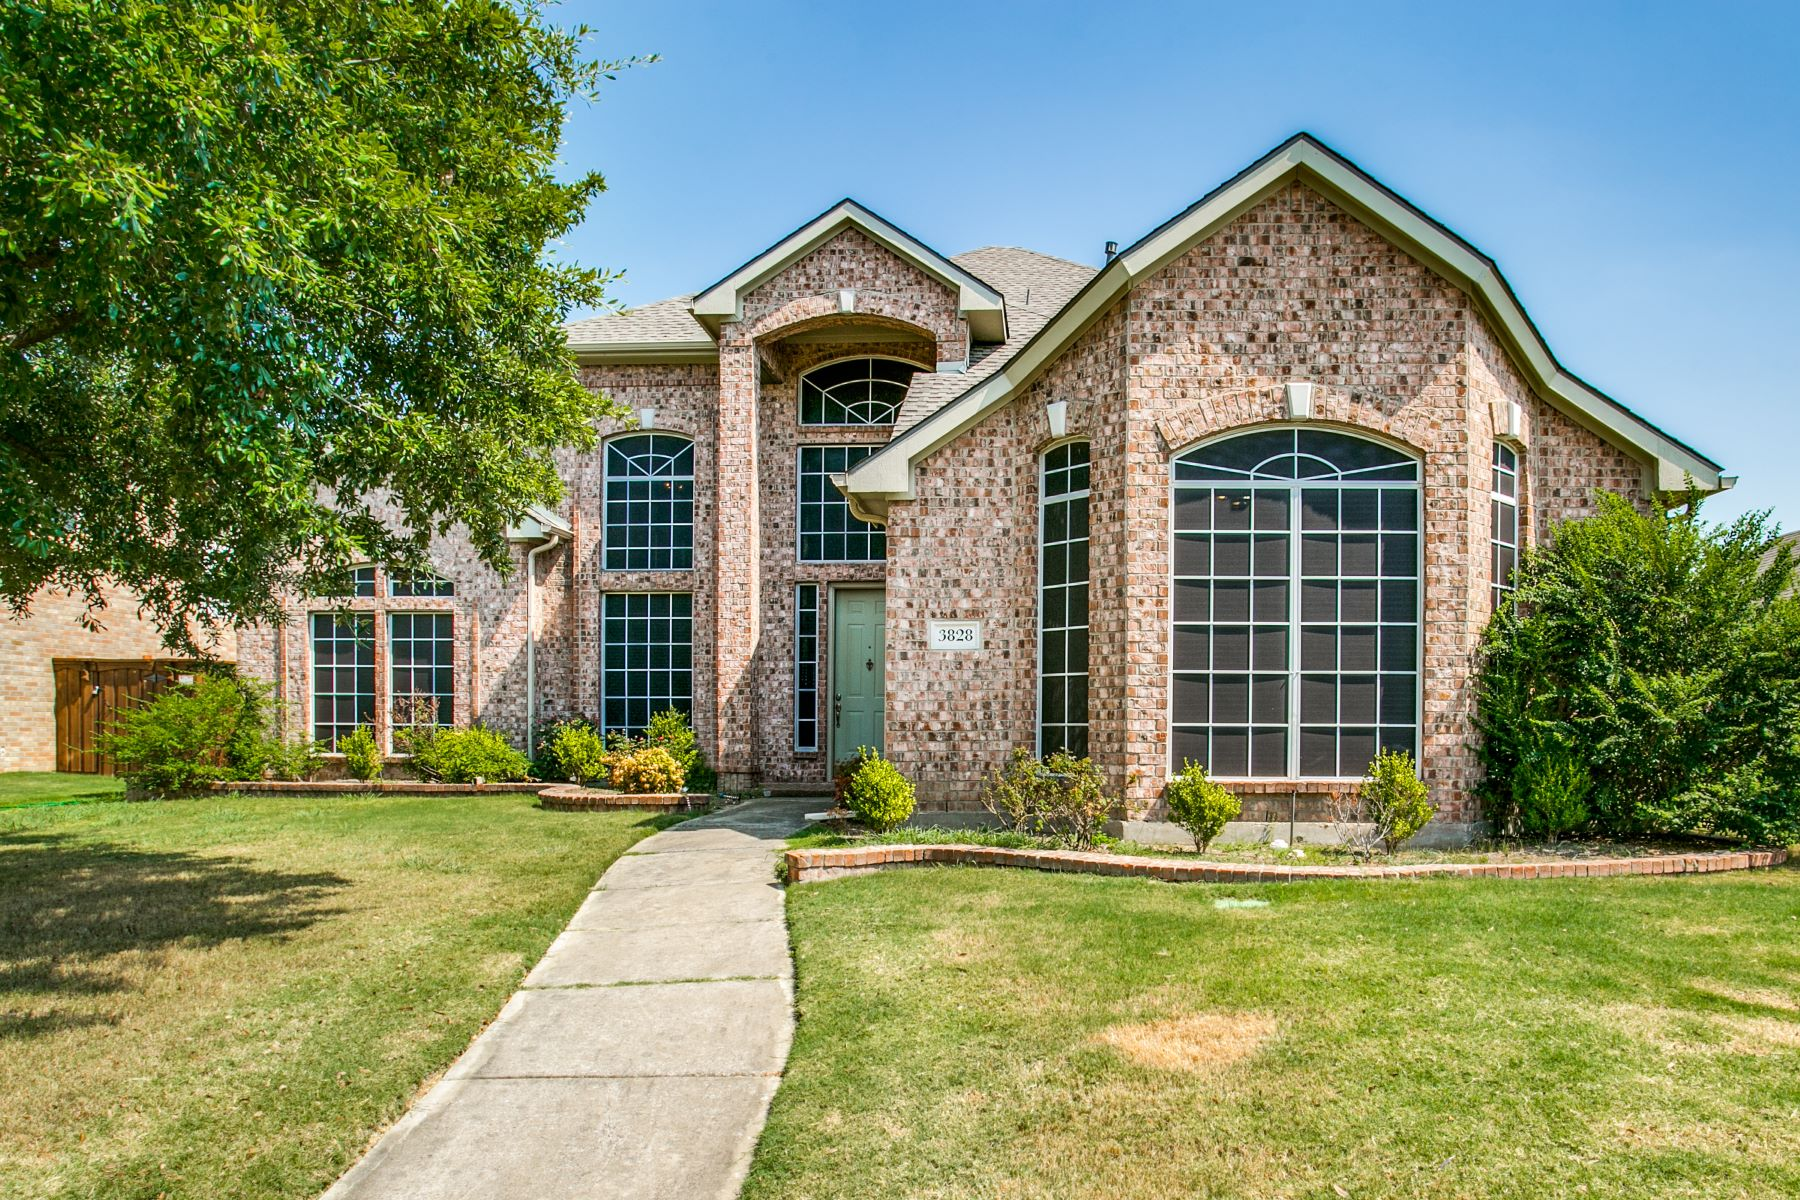 Single Family Homes for Sale at Grandeur ! 3828 Cochran Drive Carrollton, Texas 75010 United States